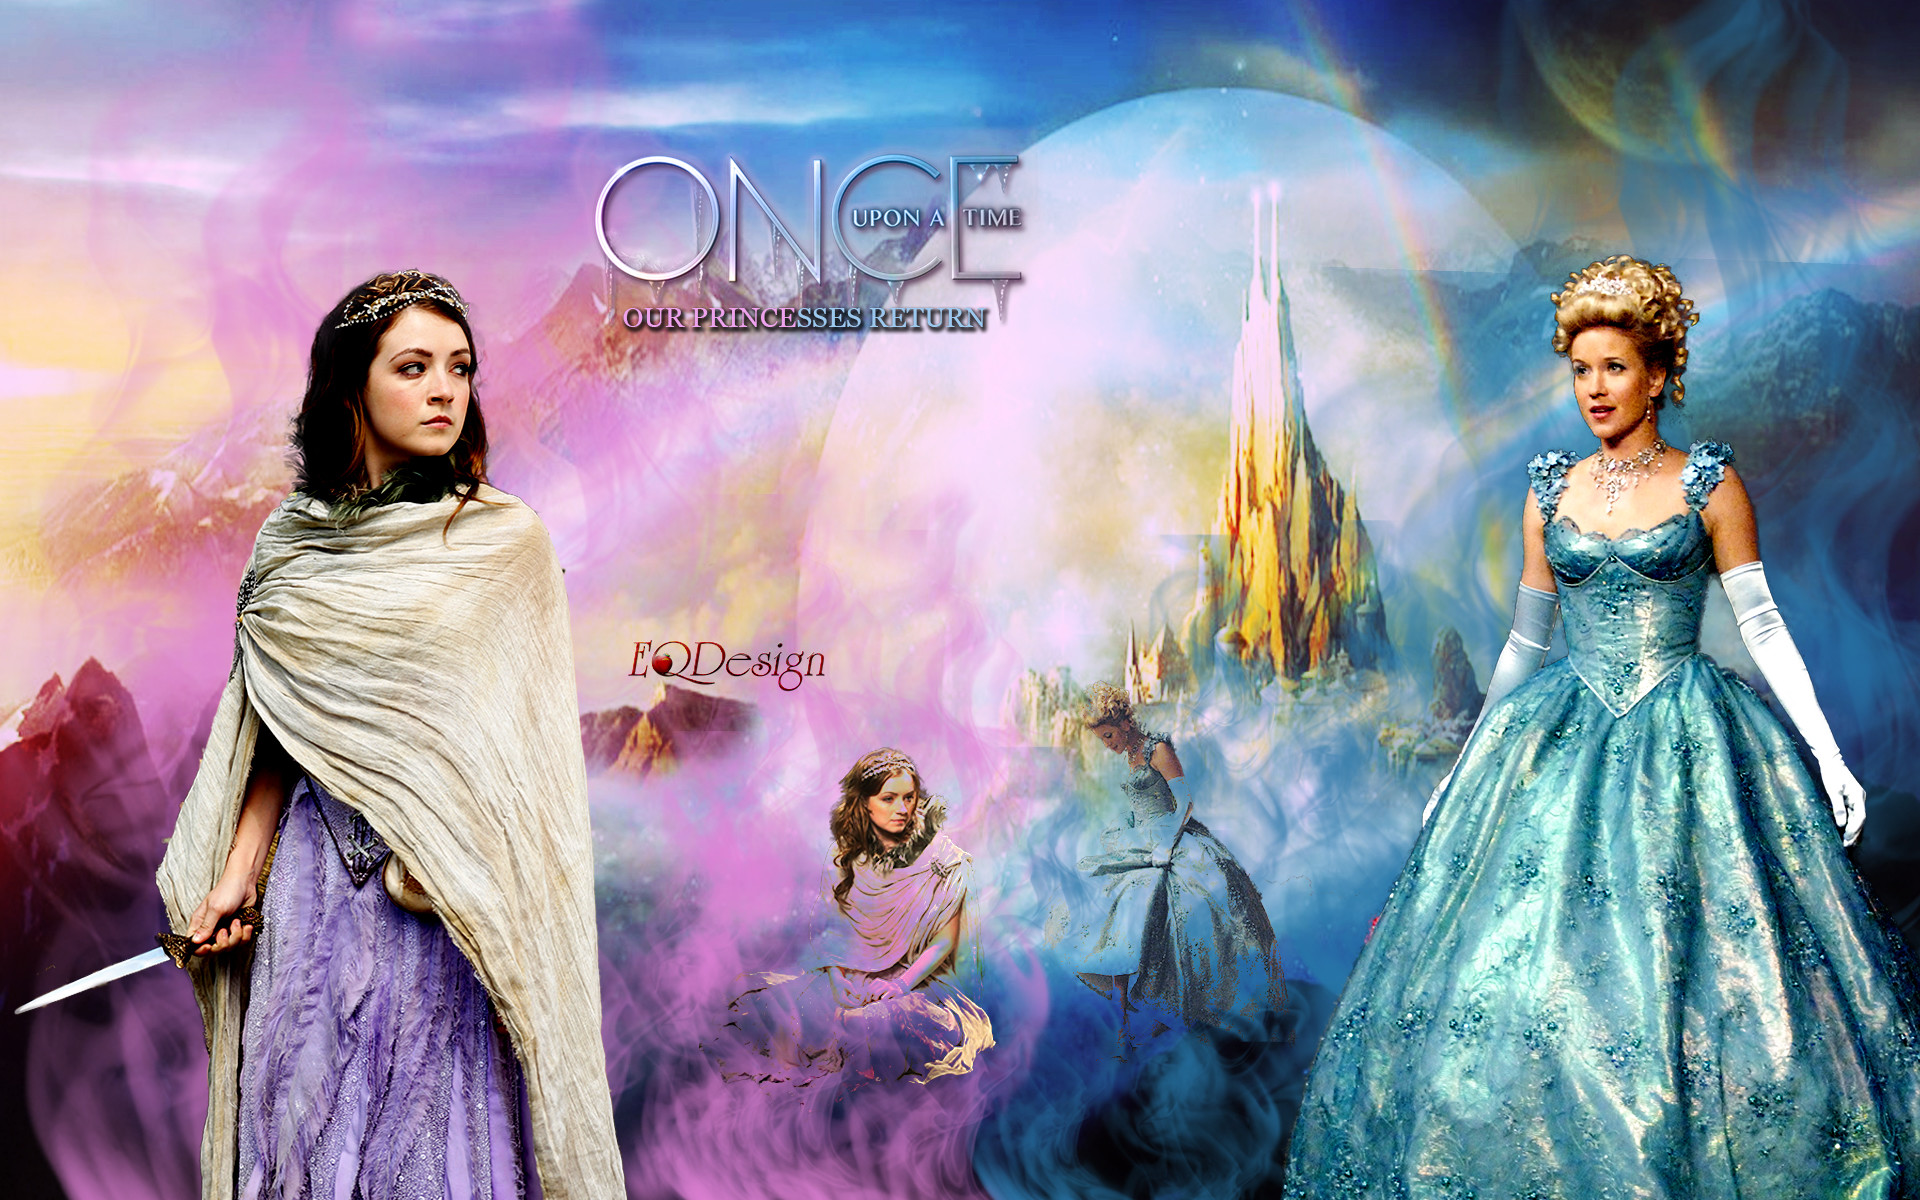 … Aurora and Cinderella – Once Upon a Time by eqdesign